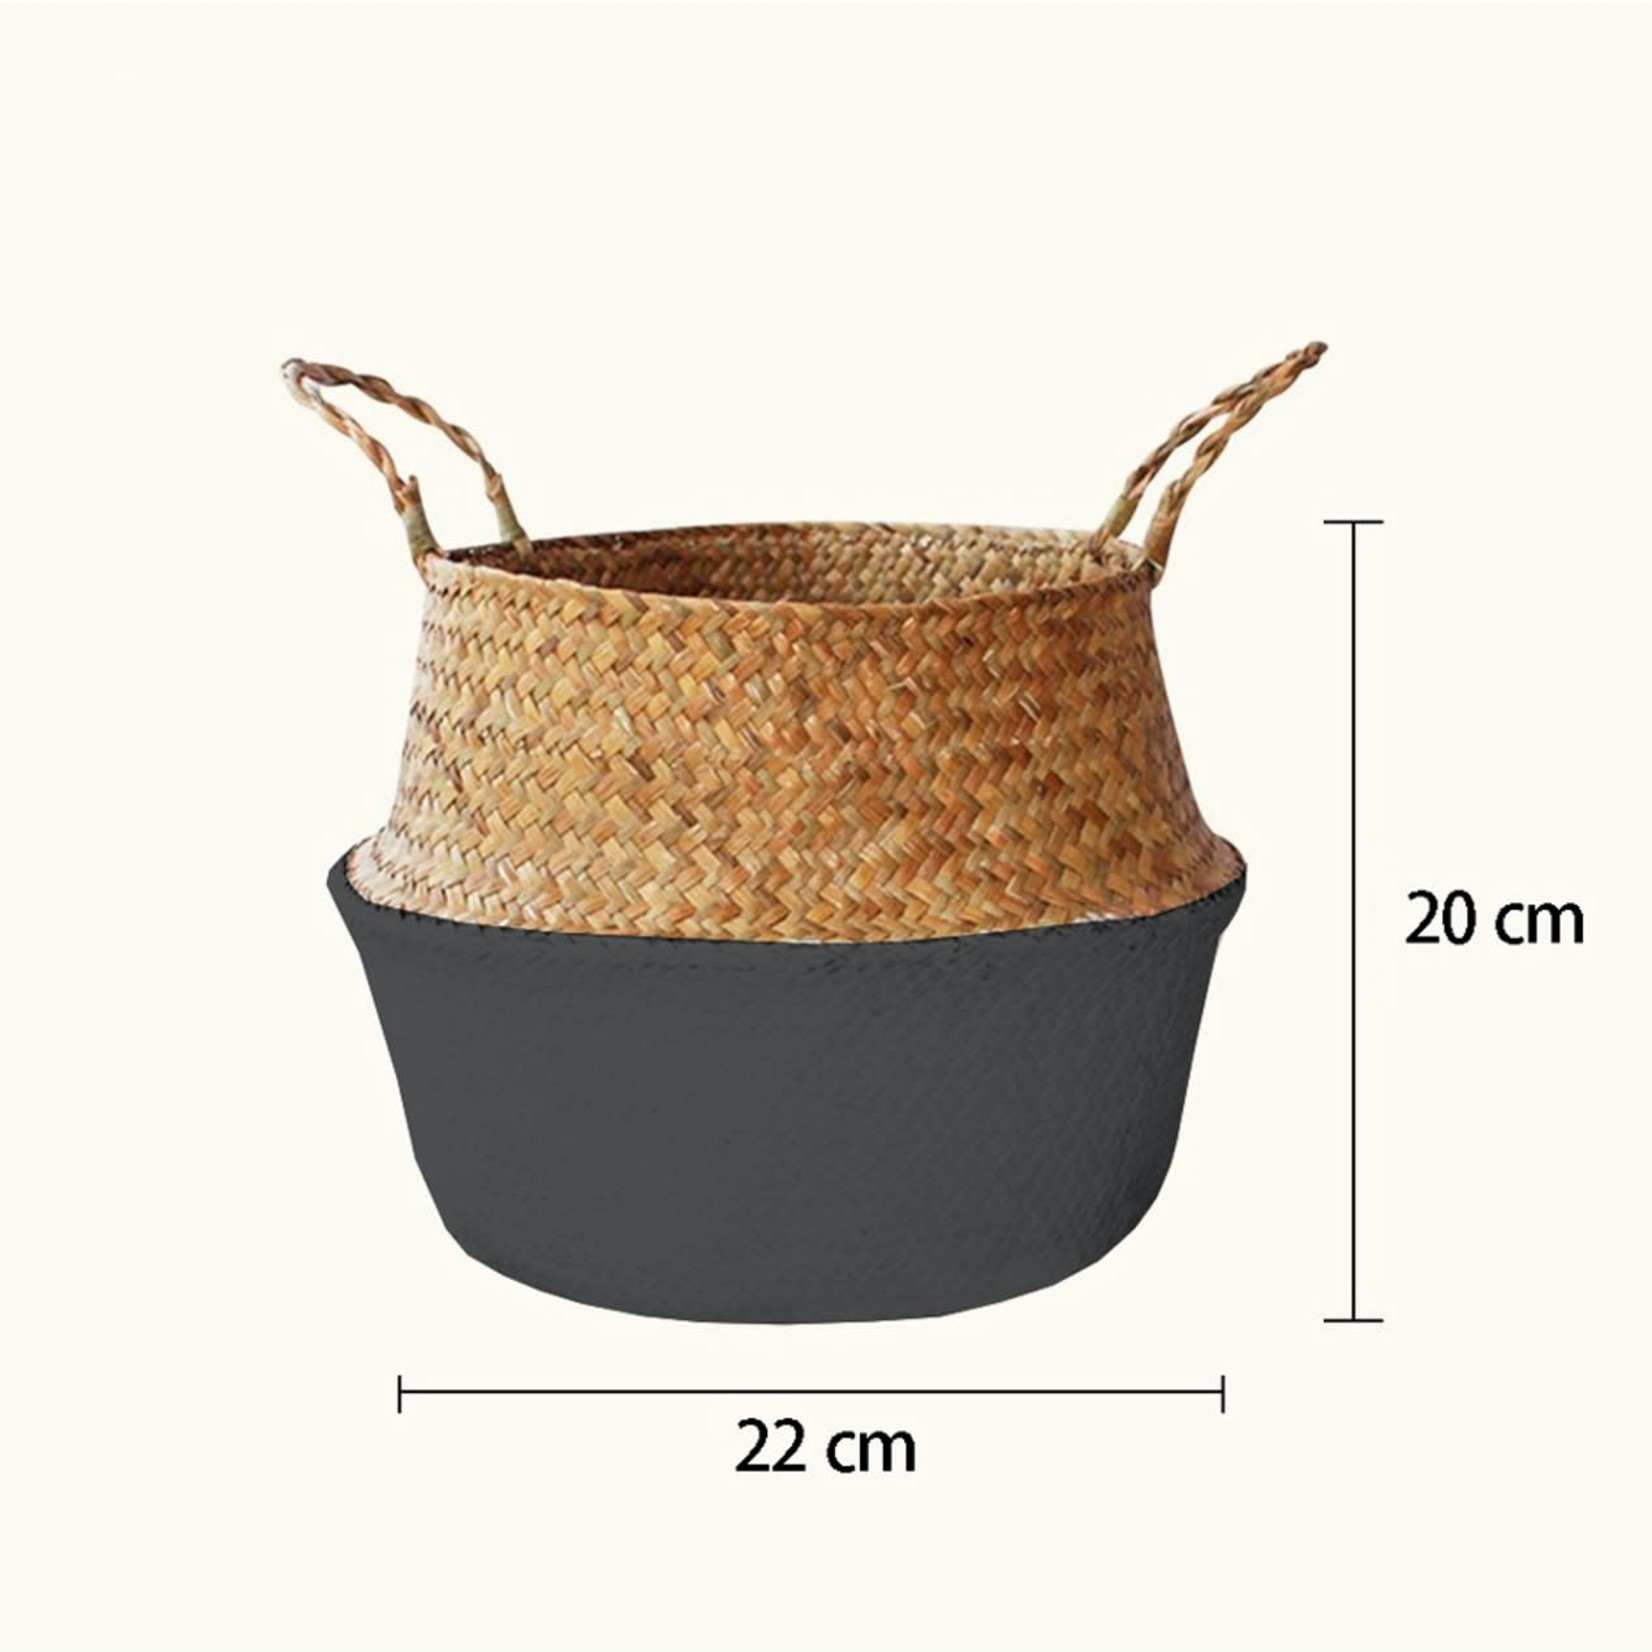 Page&Co. Woven Seagrass Flower Basket - Medium